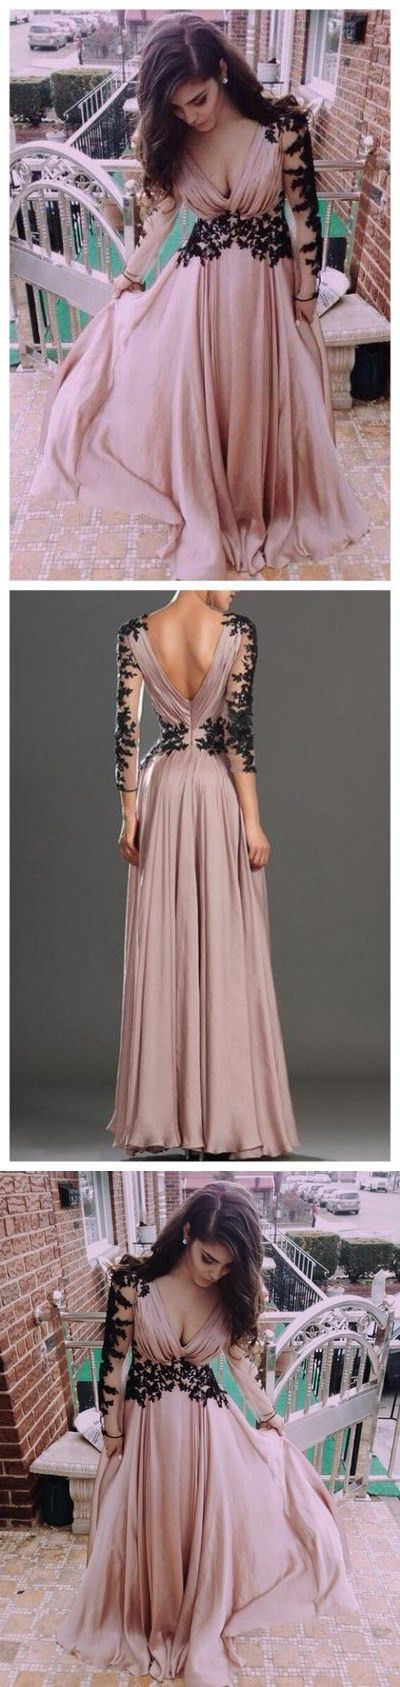 long sleeve prom dress, pink prom dress, chiffon prom dress, prom dress, elegant prom dresses, popular prom dress, M0345#prom #promdress #promdresses #longpromdress #promgowns #promgown #2018style #newfashion #newstyles #2018newprom#eveninggowns#longsleevepromdress#pinkpromdress#chiffonpromdress#elegantpromdress